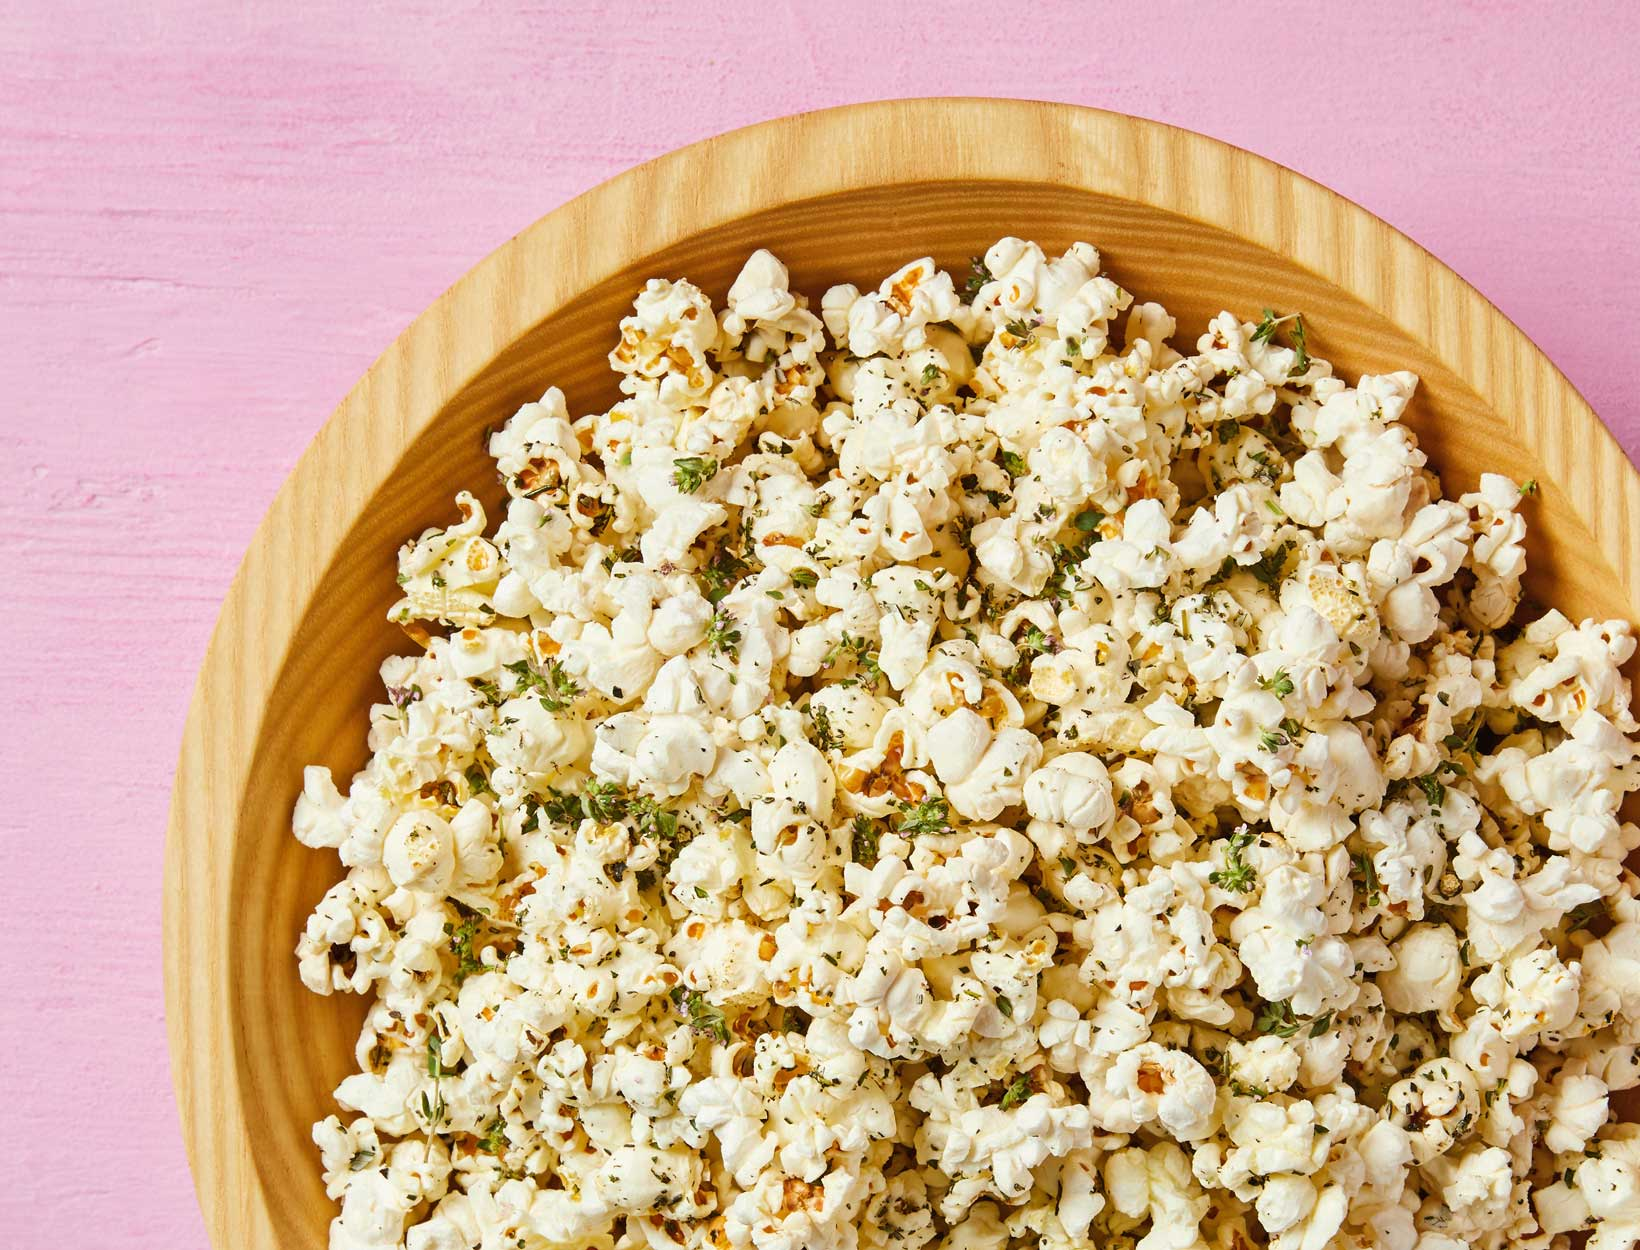 Olive Oil and Herb Popcorn